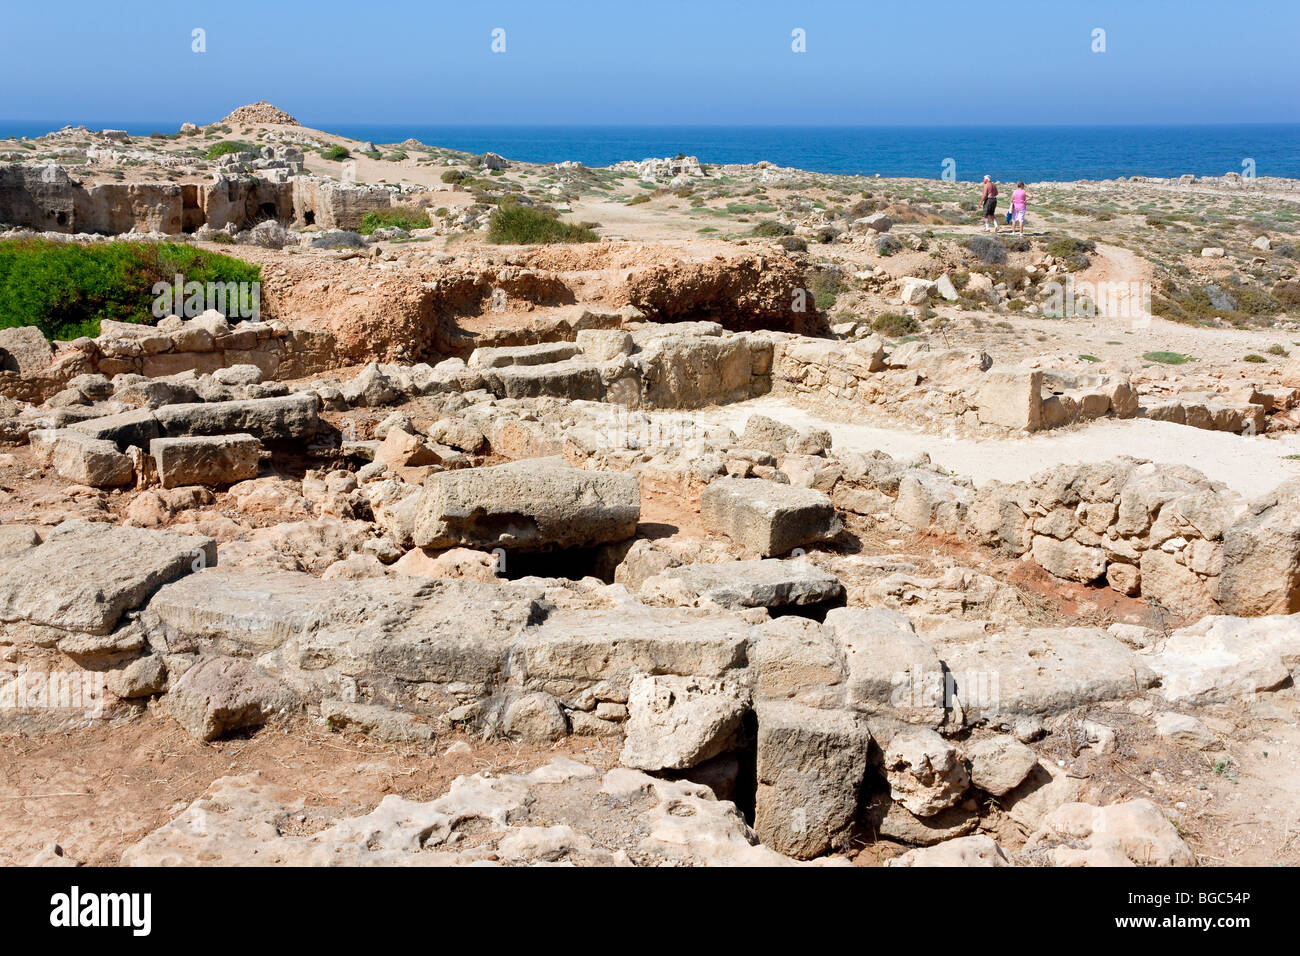 Excavations at the Royal Tombs of Kato Paphos, Southern Cyprus, West Coast, Cyprus, Southern Europe - Stock Image